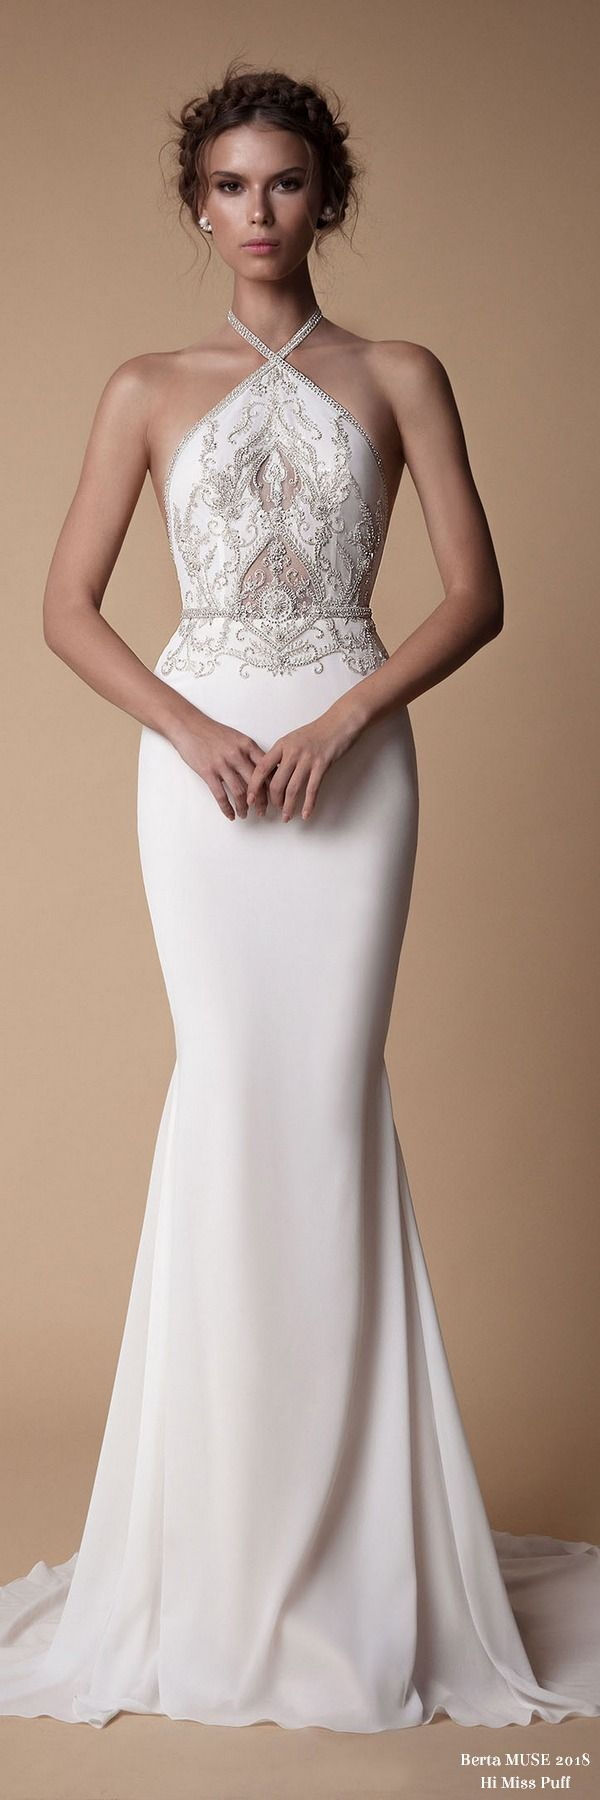 Berta muse wedding dress collection wedding dress weddings